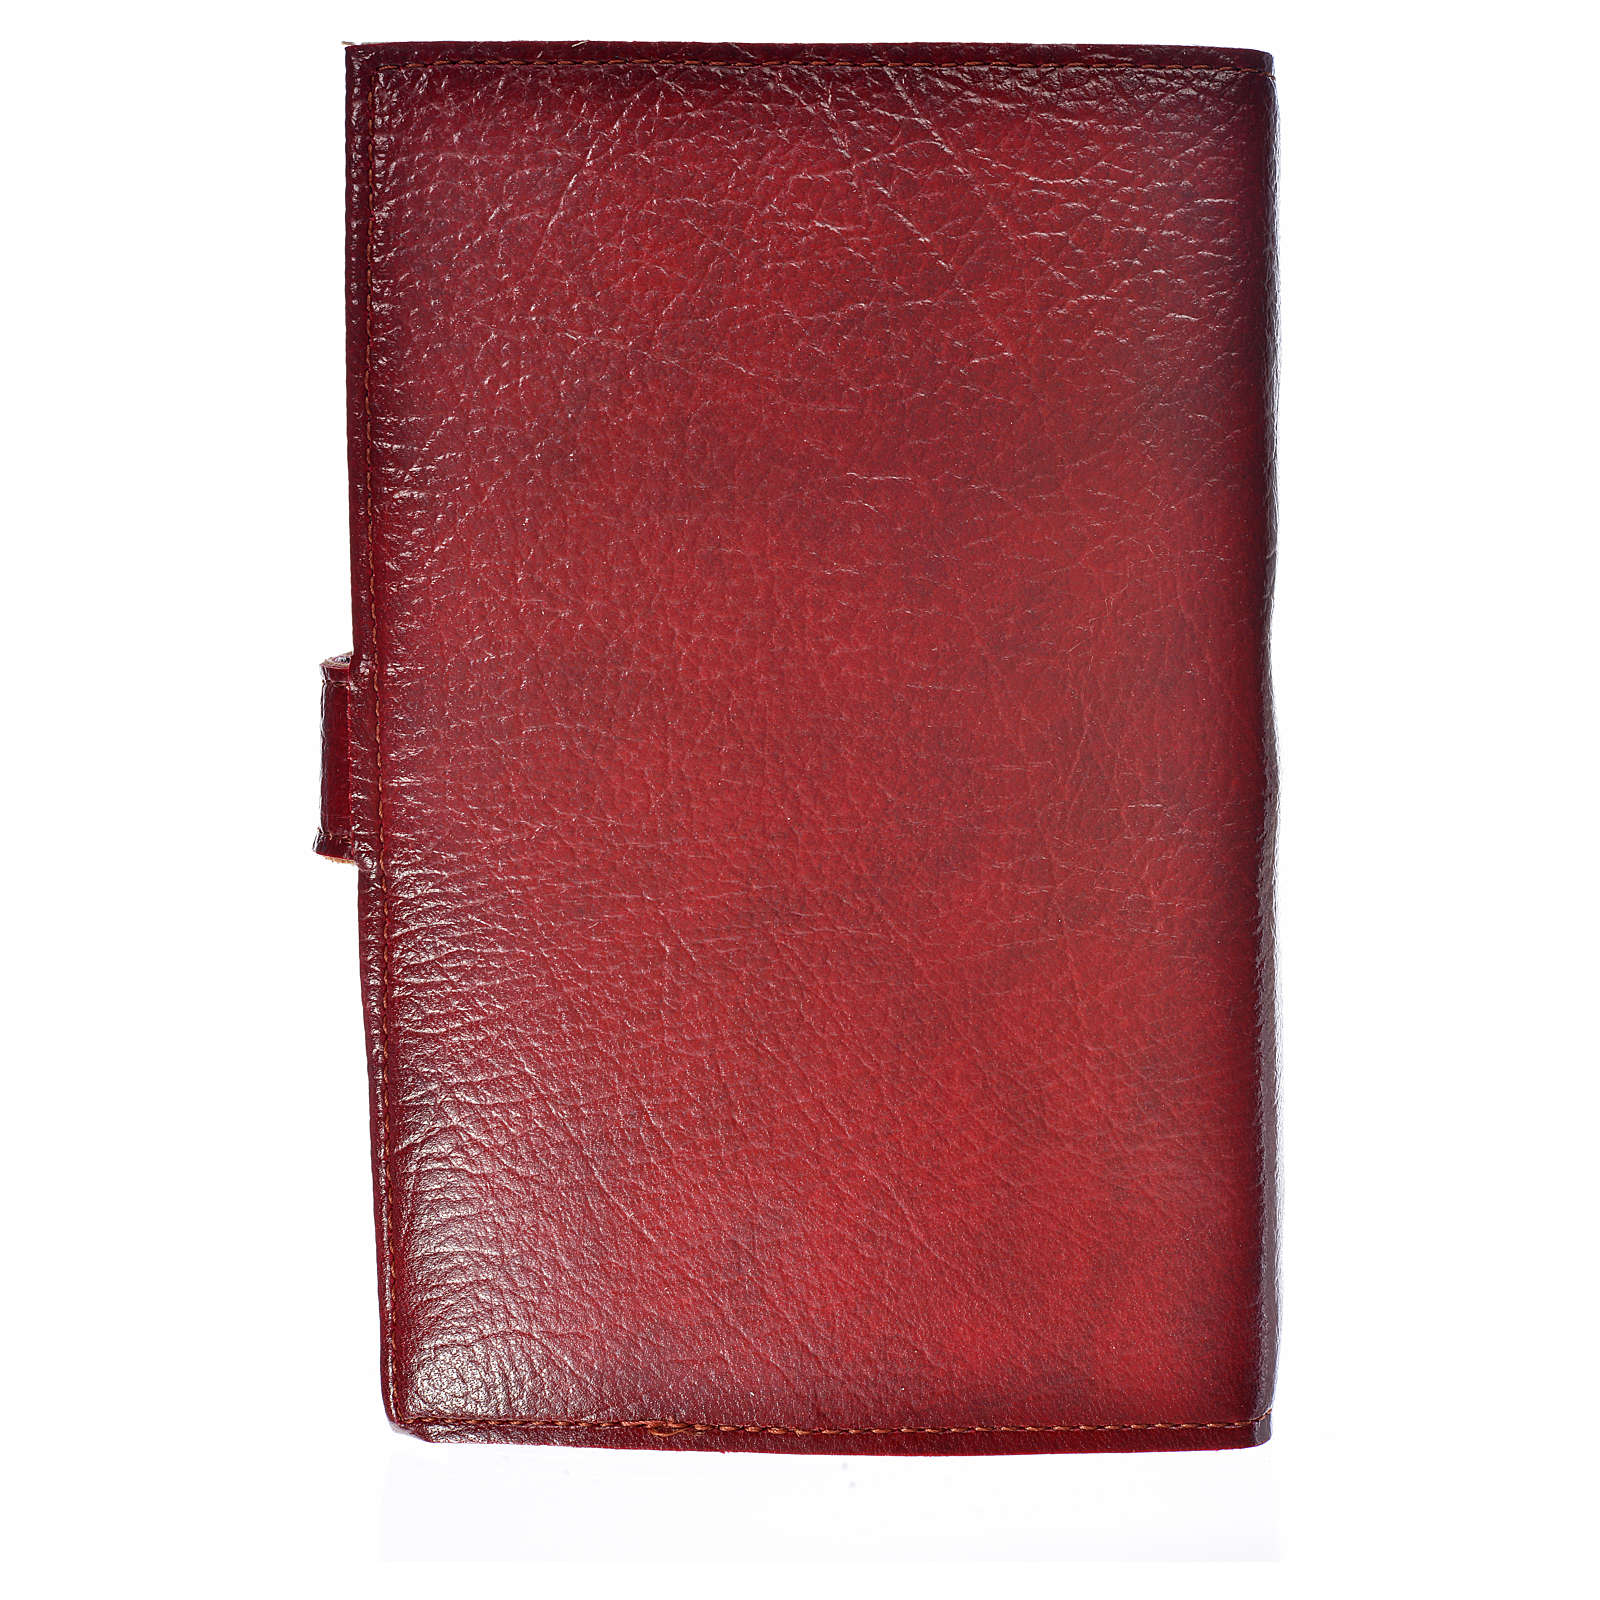 Ordinary time III cover in burgundy leather imitation with image of Jesus Christ 4